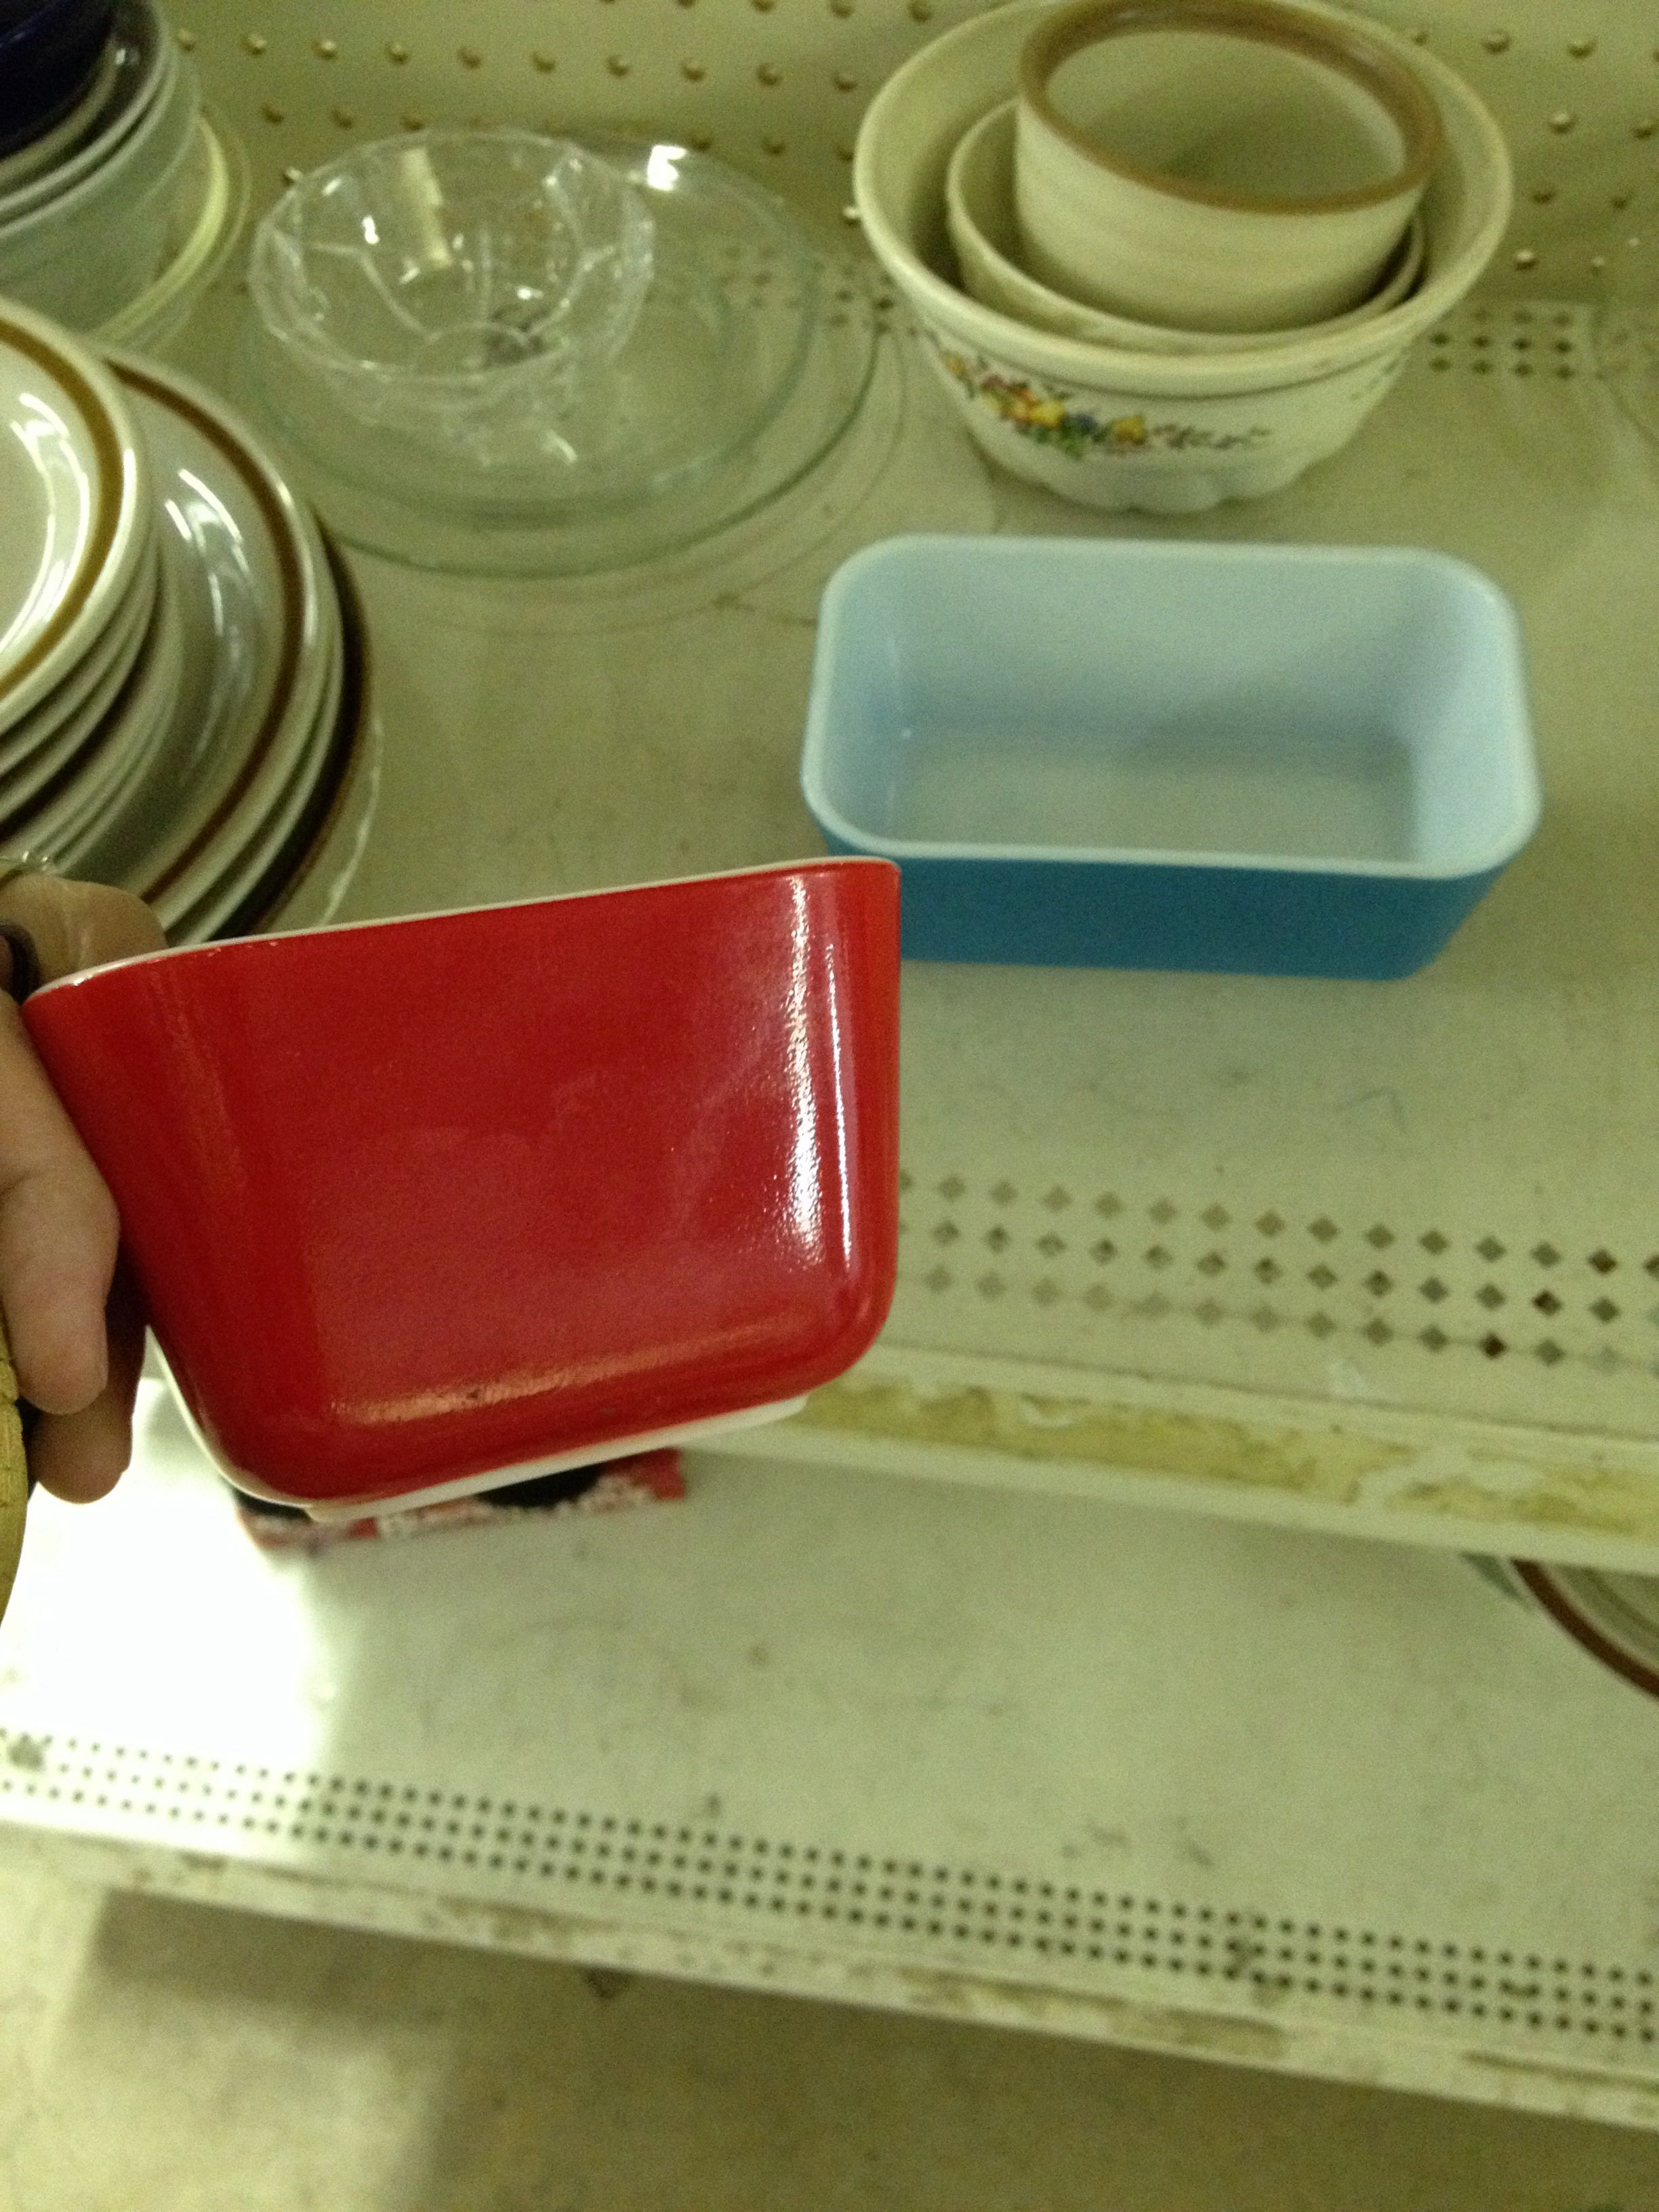 I bought the red small Pyrex fridge dish and left the blue one for someone else. I have too many of those.